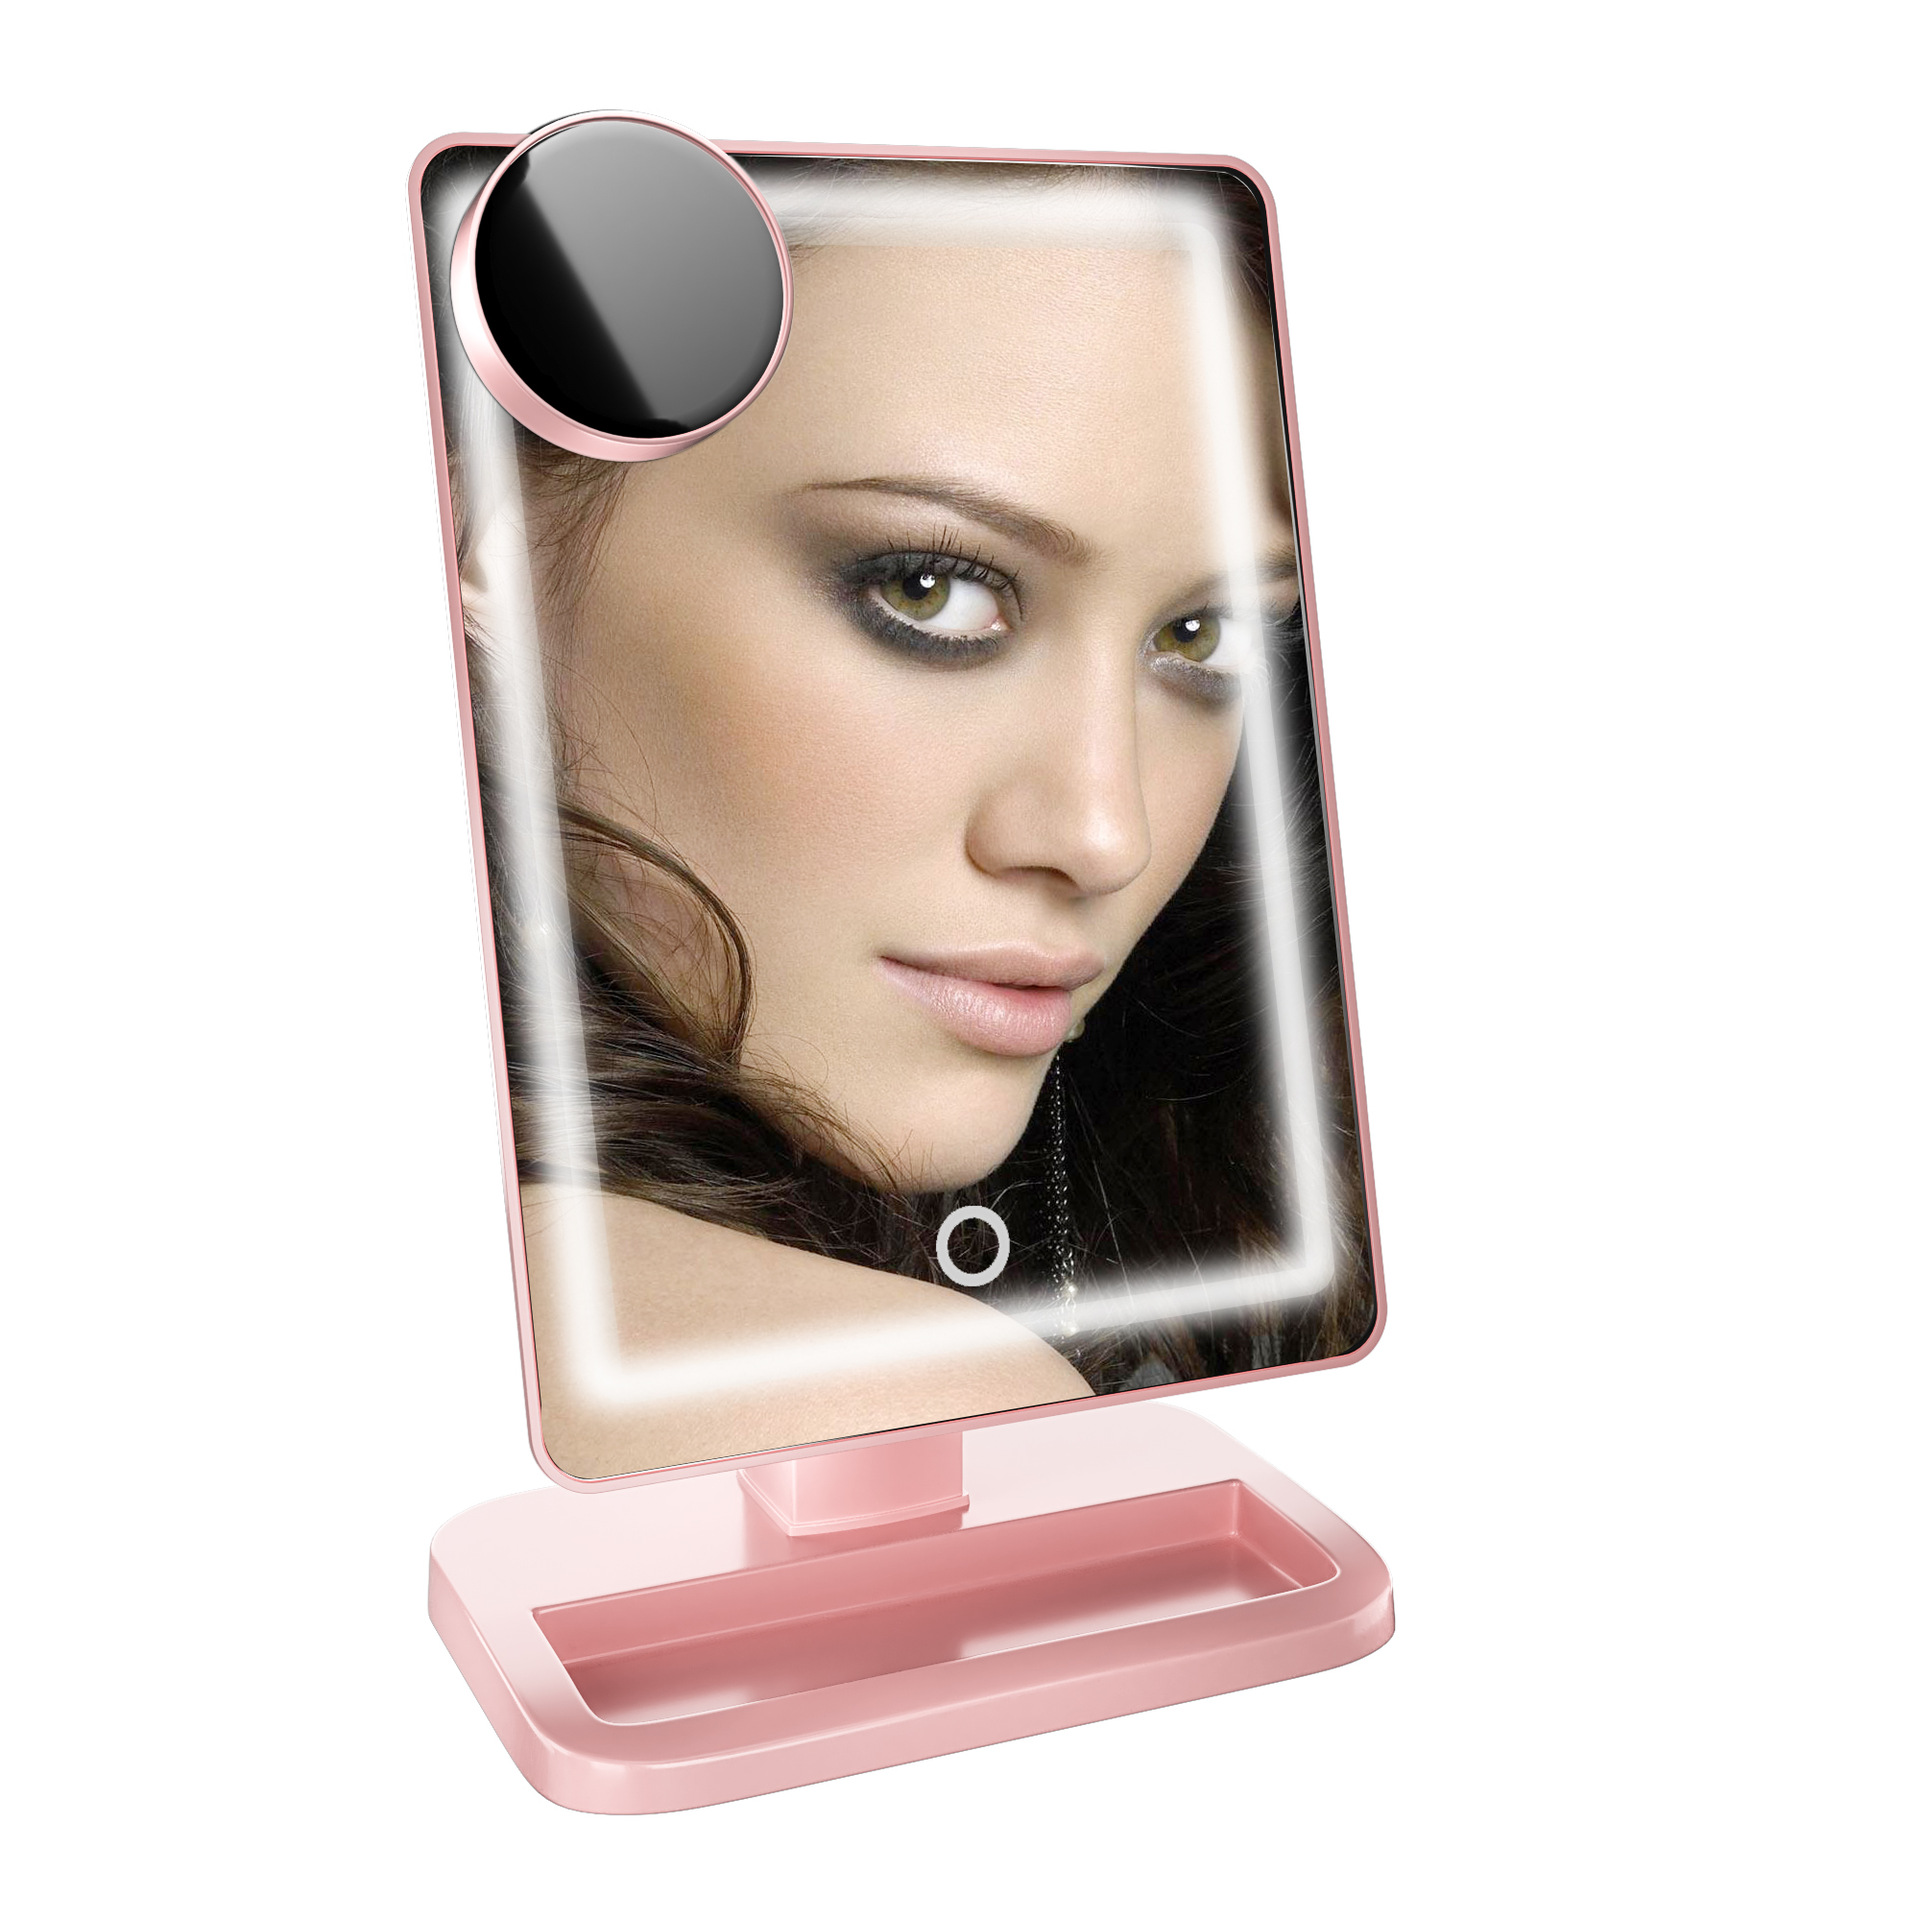 LED Makeup Mirror Tabletop 180 Degree Rotation Vanity Make Up Cosmetic Mirror With Removable 10X Magnifying Beauty Tool 360 degree swivel led makeup mirror rotating dual sided make up tabletop magnifying mirrors with lights for women lady gift fm88